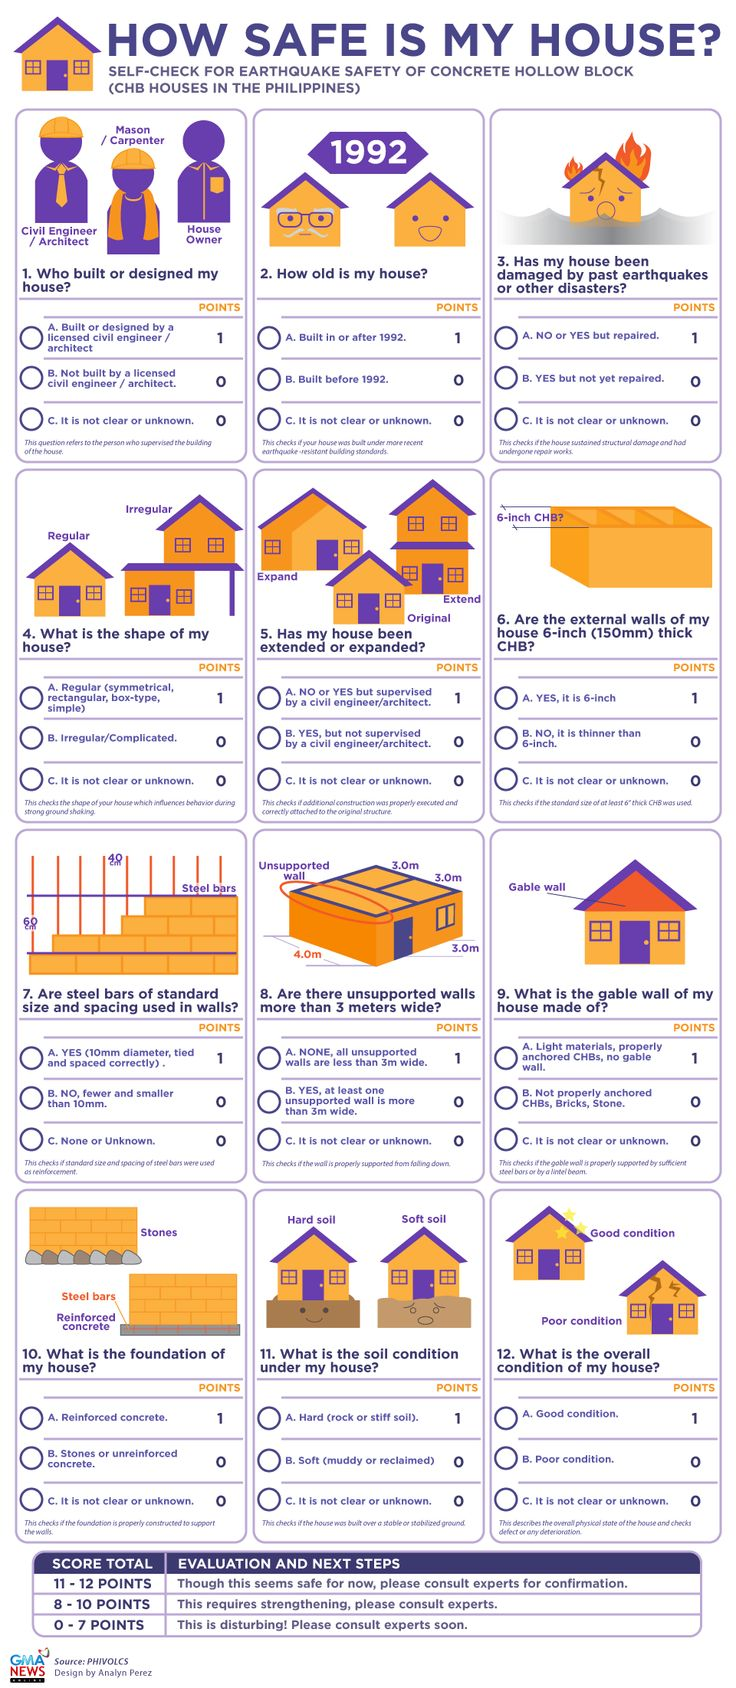 CHECKLIST: Will your house survive a major earthquake? | News | GMA News Online